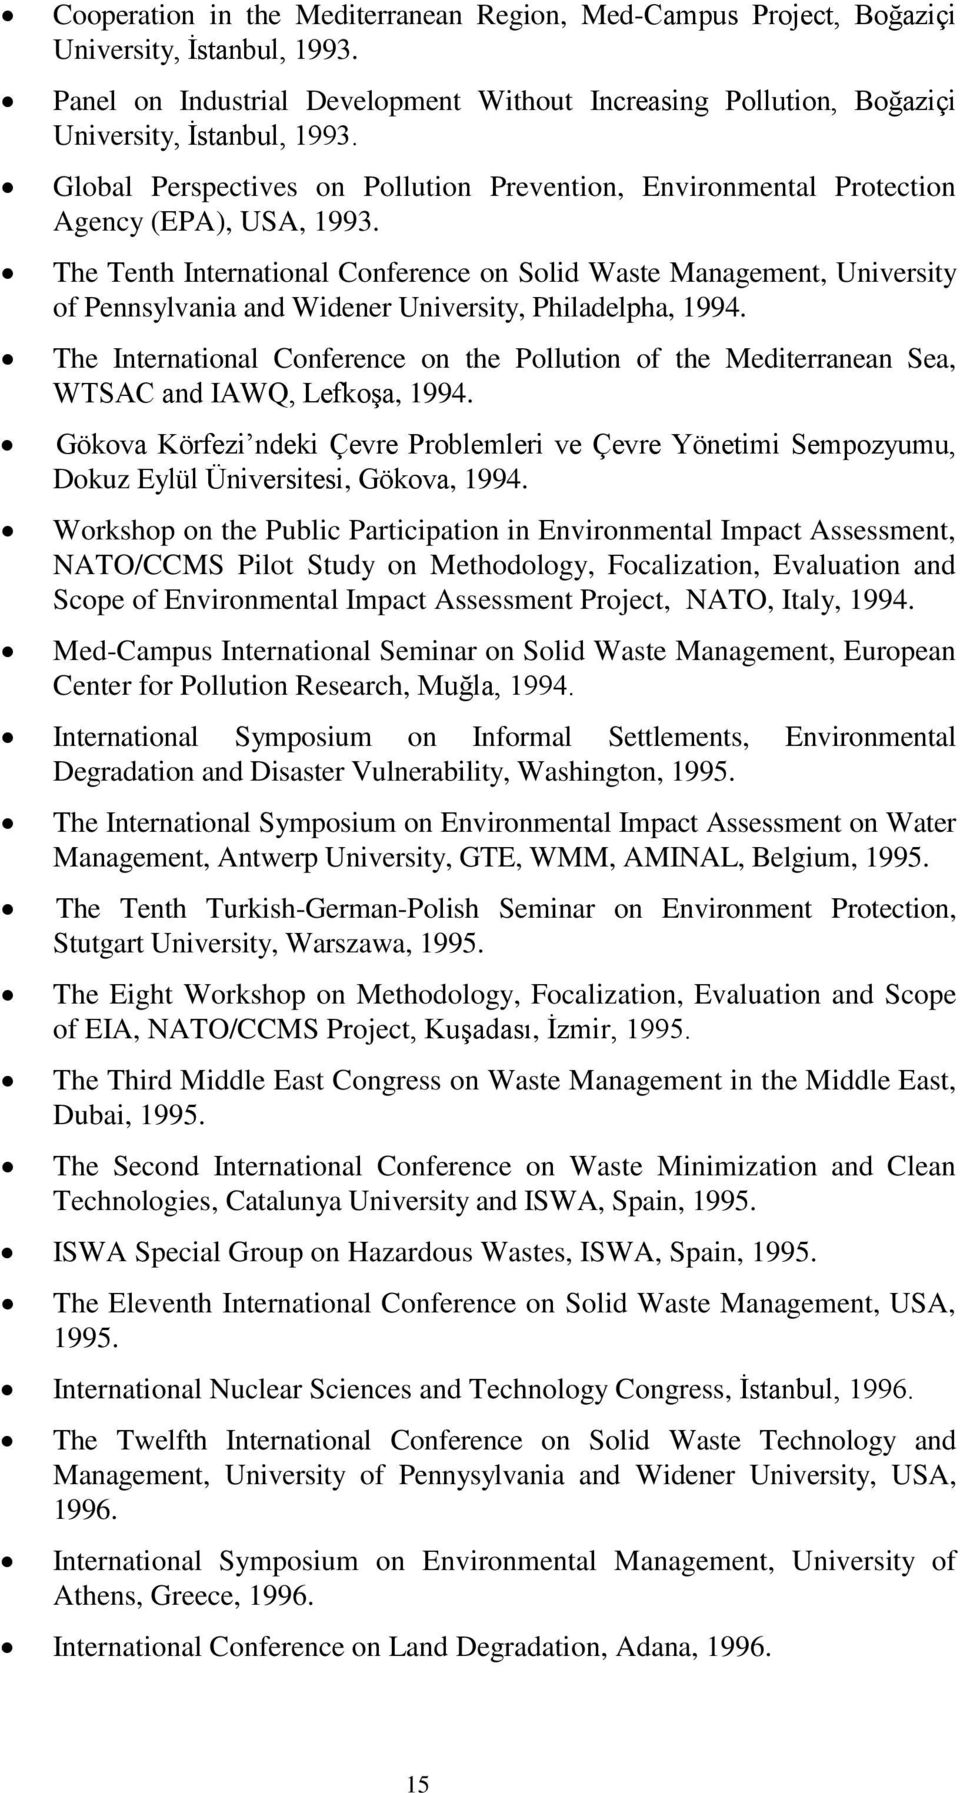 The Tenth International Conference on Solid Waste Management, University of Pennsylvania and Widener University, Philadelpha, 1994.